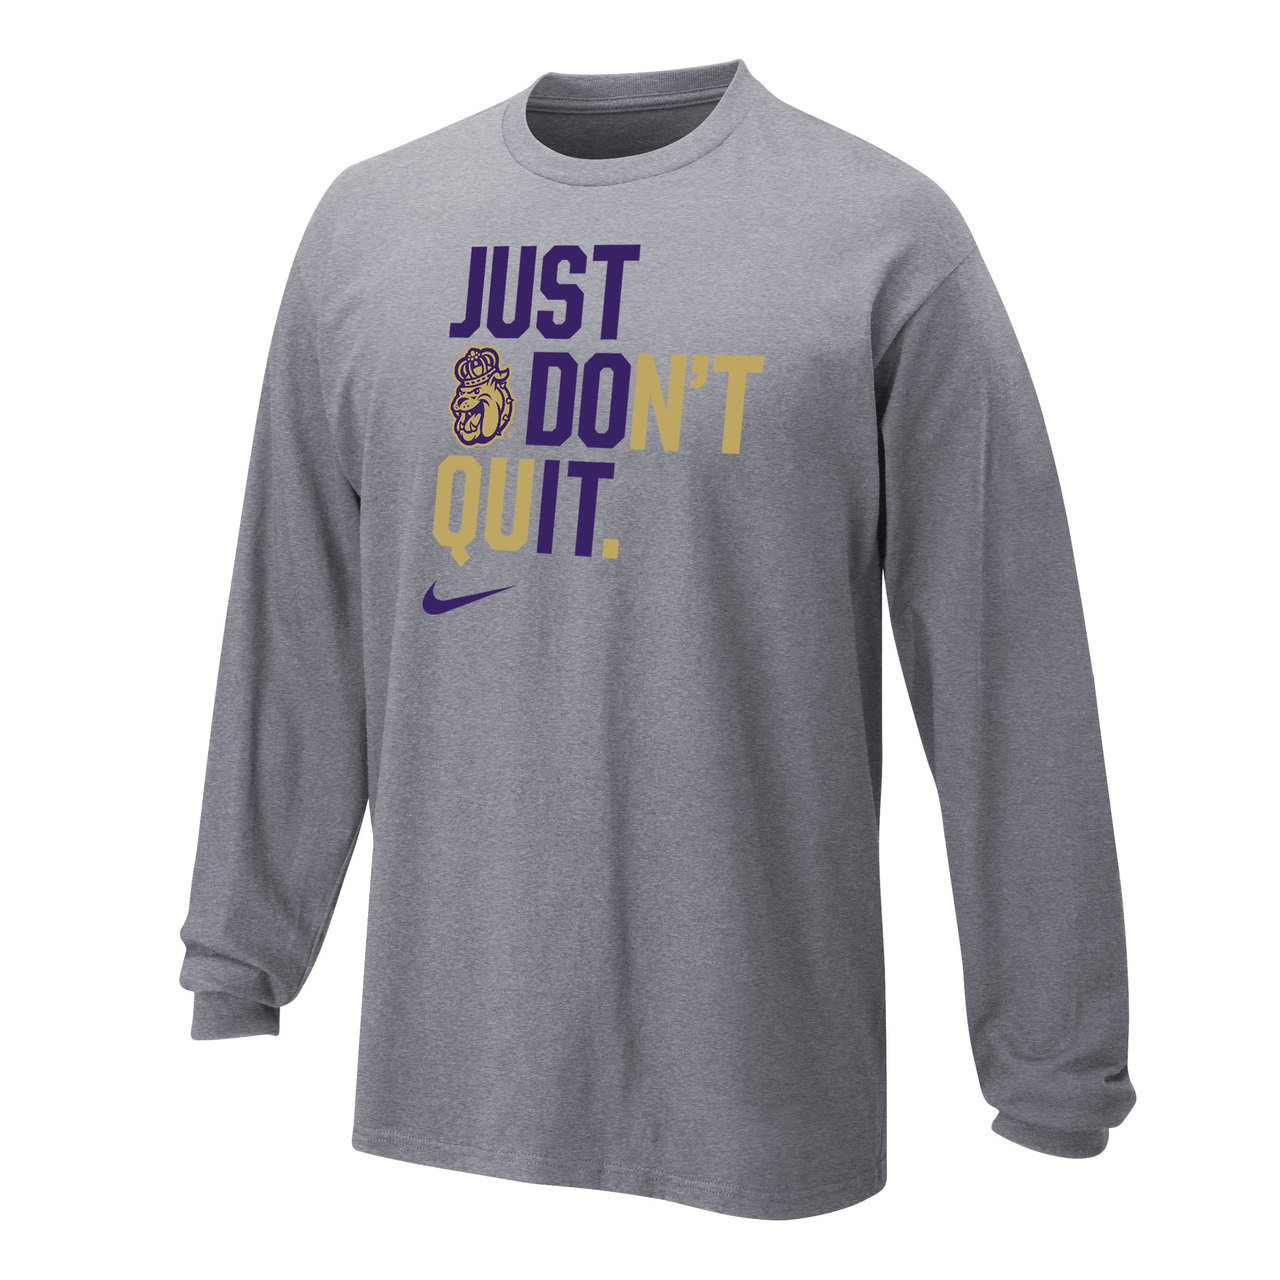 Nike Youth Core Cotton Long Sleeve Tee - University Outpost ac132dada933